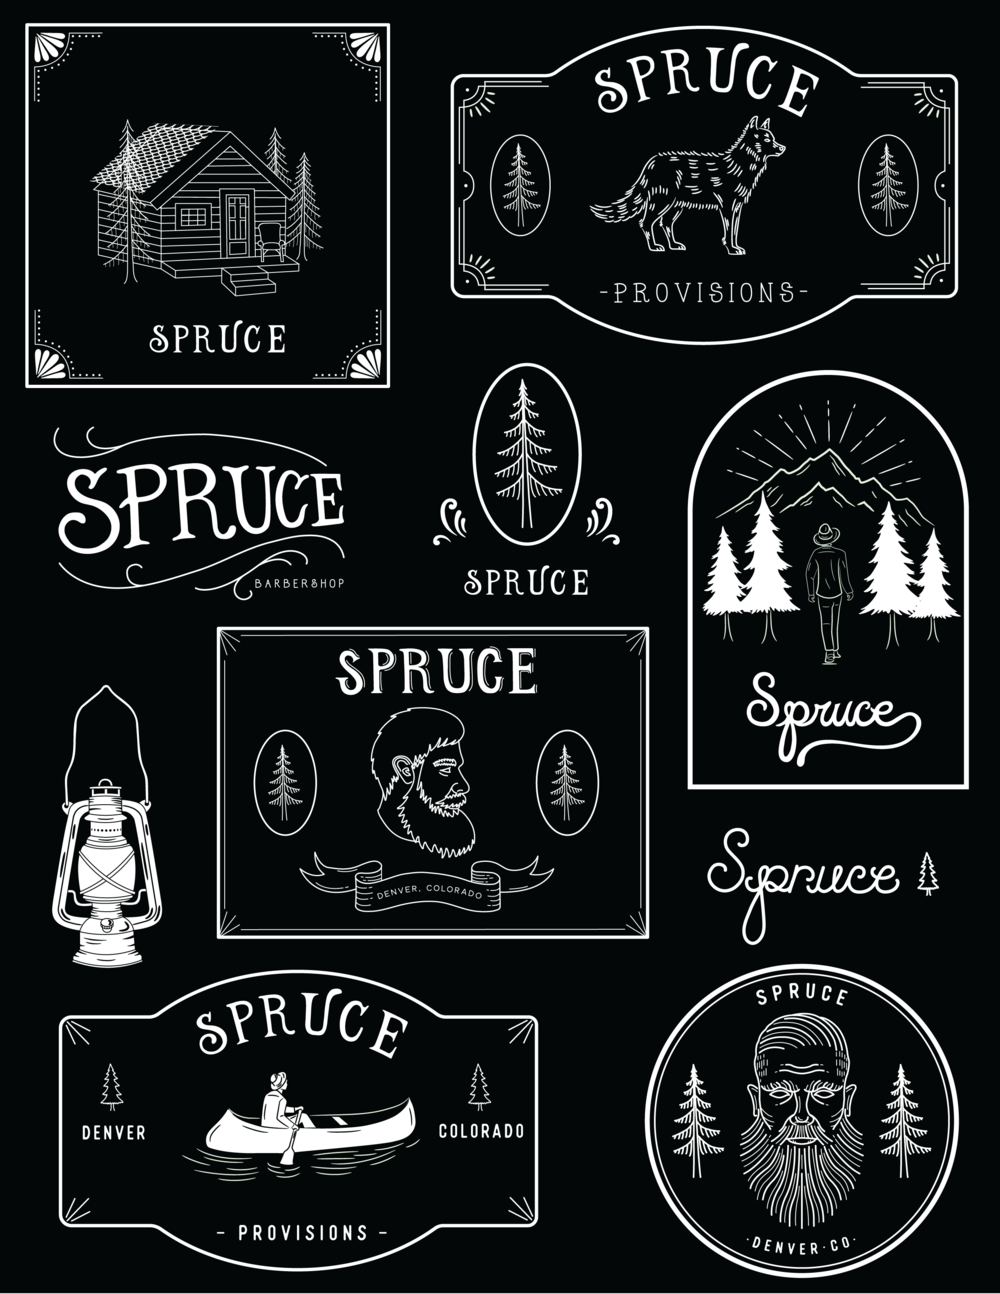 Logo designs for Spruce